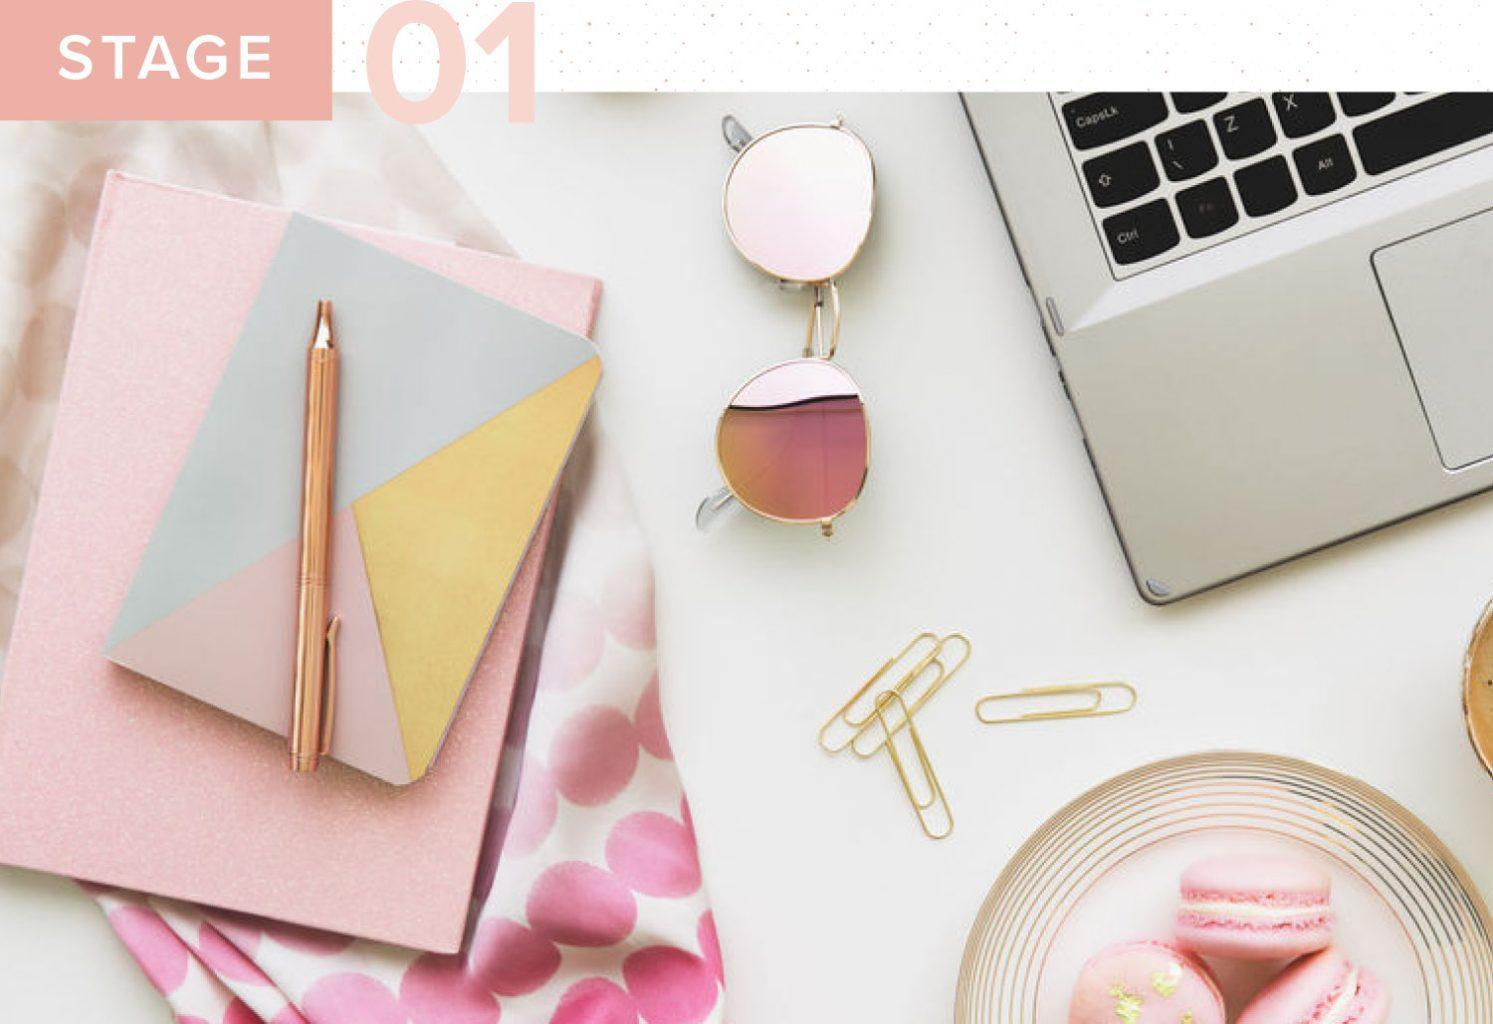 a desk with a pink notebook, pink sunglasses, macarons, and a laptop